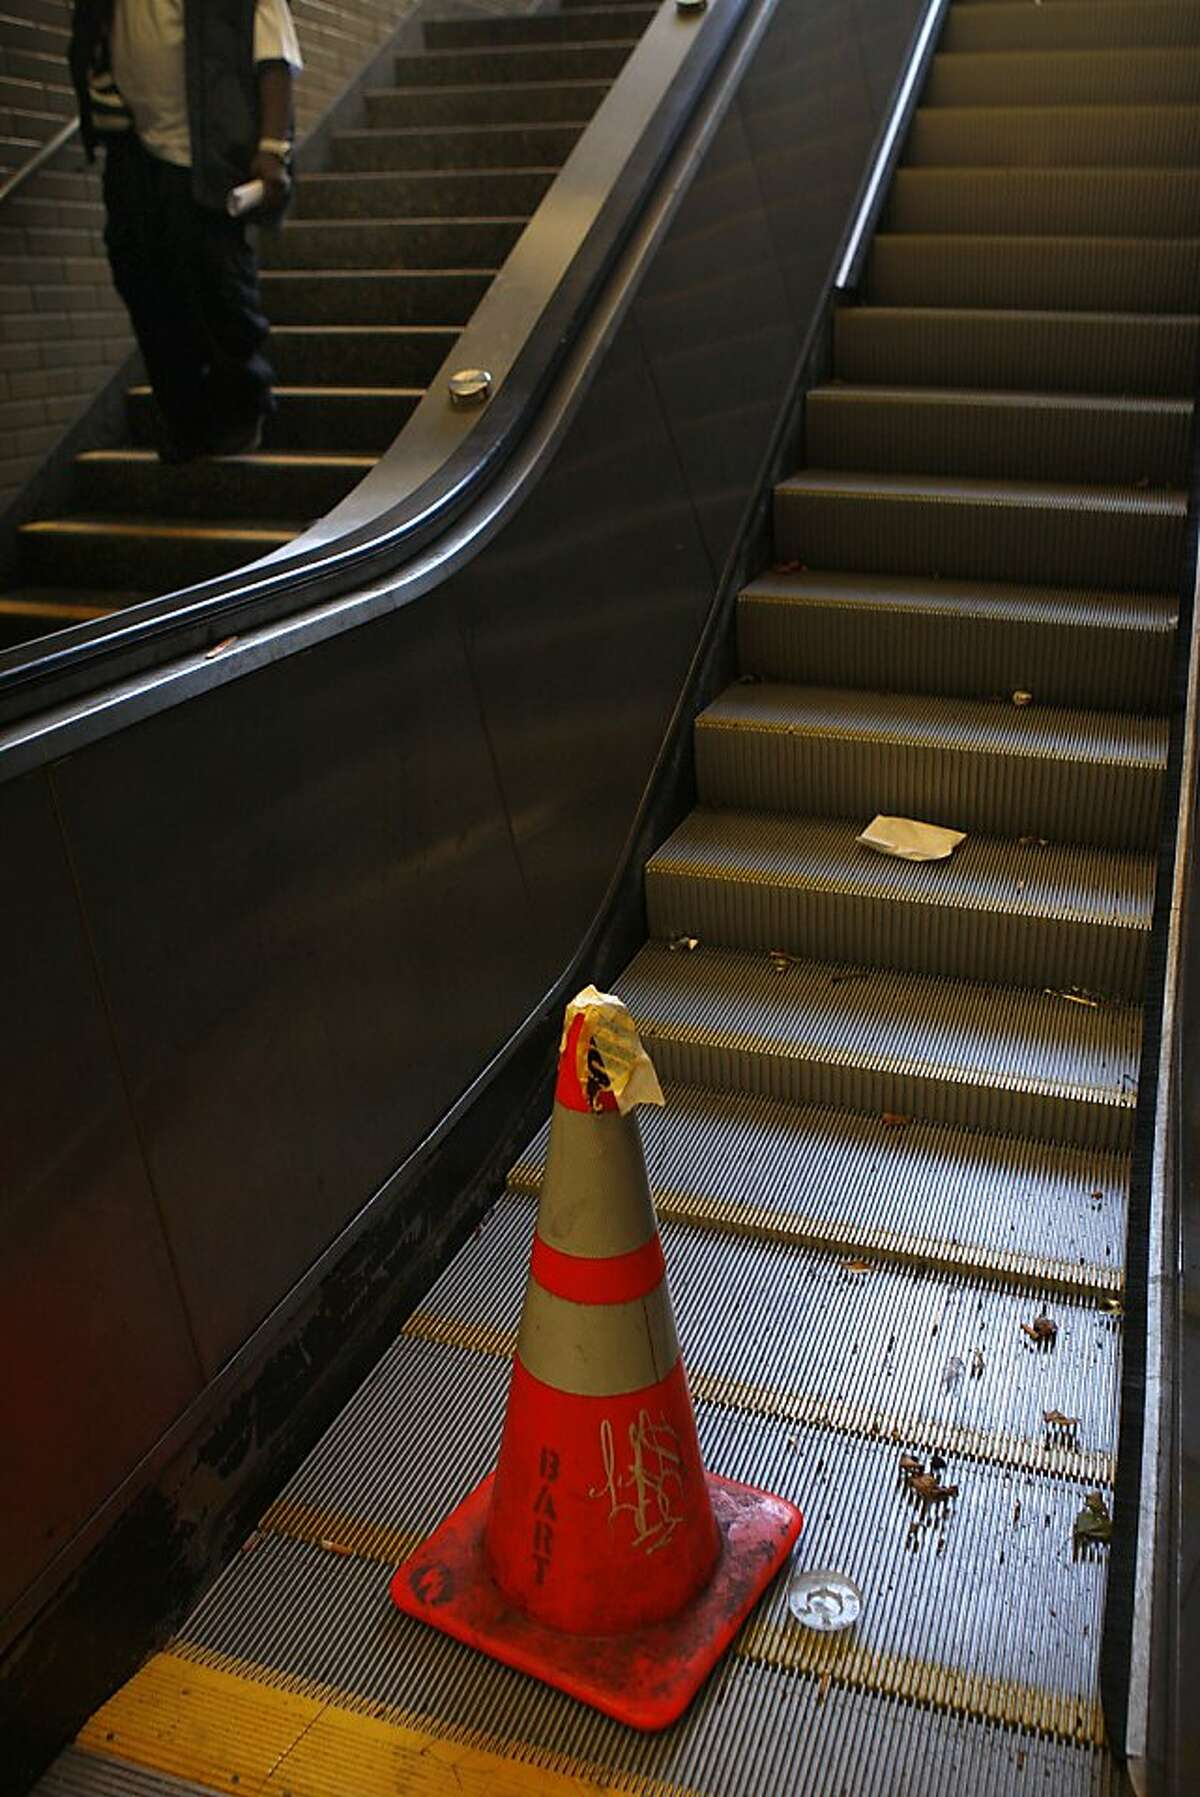 The escalator at Market & 8th streets at the Civic Center Bart station in San Francisco, Calif., not working on Wednesday, July 25, 2012.